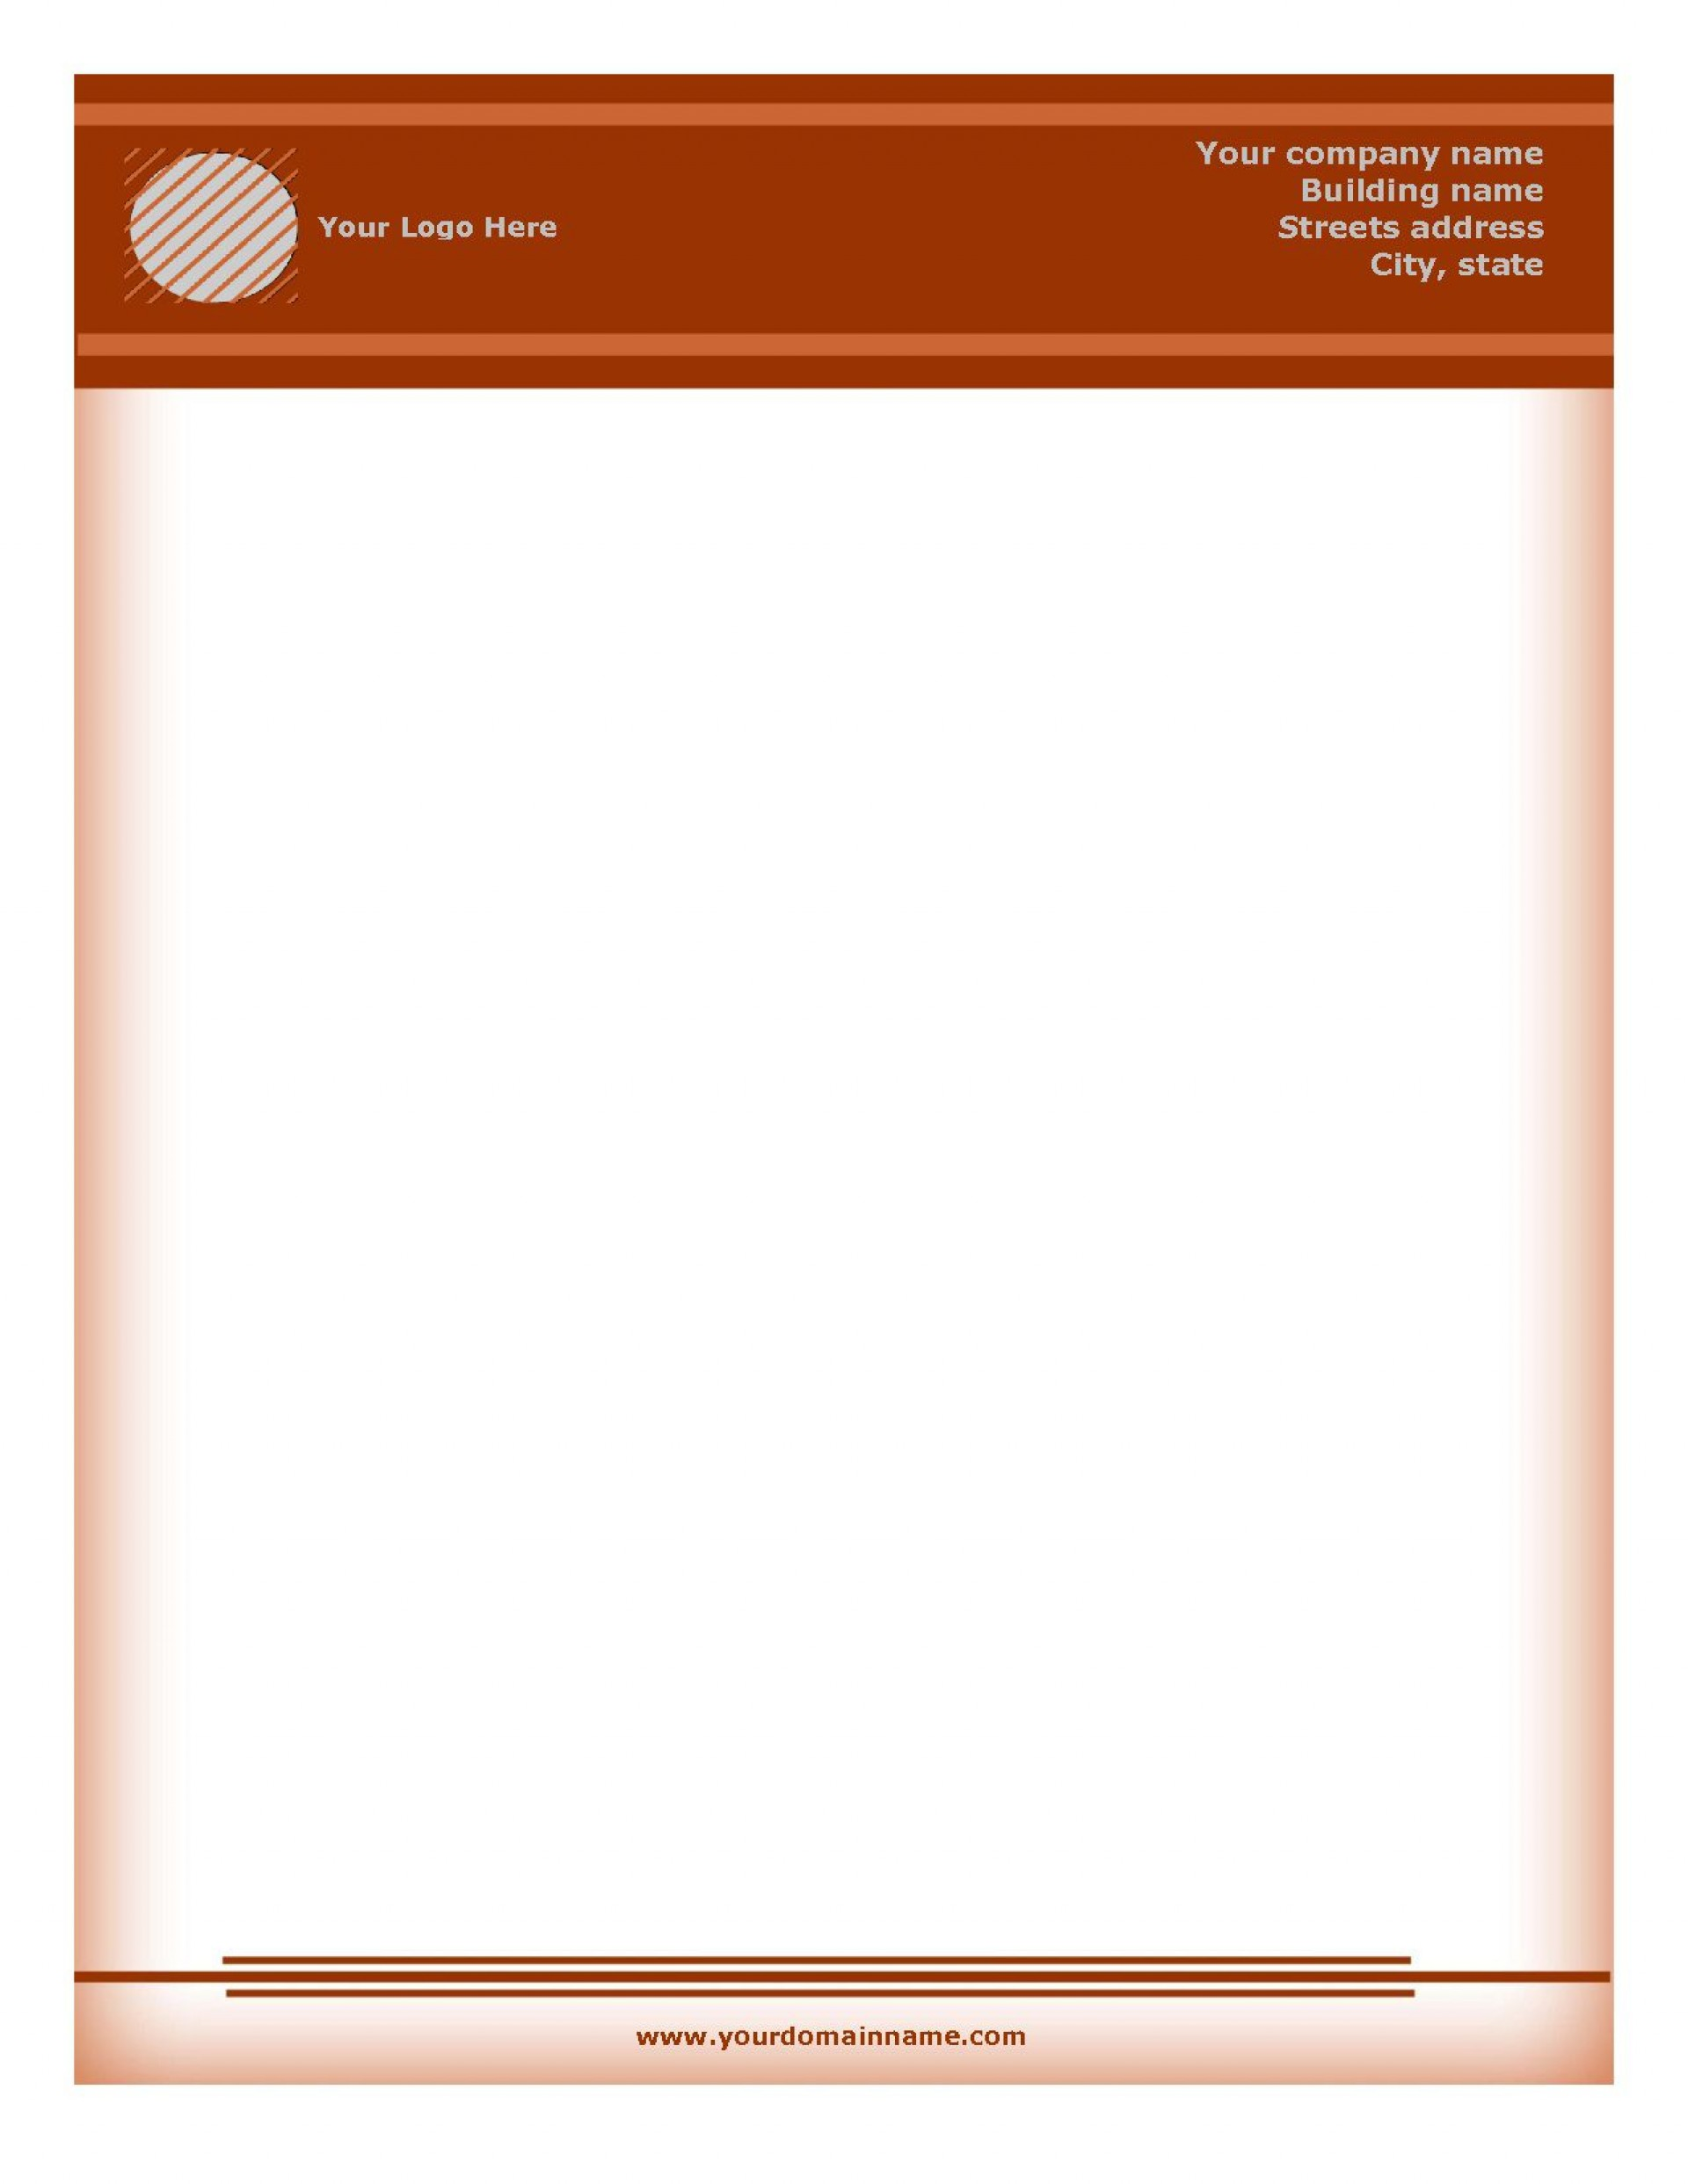 002 Marvelou Free Letterhead Template Download High Definition  Word Psd Sample1920